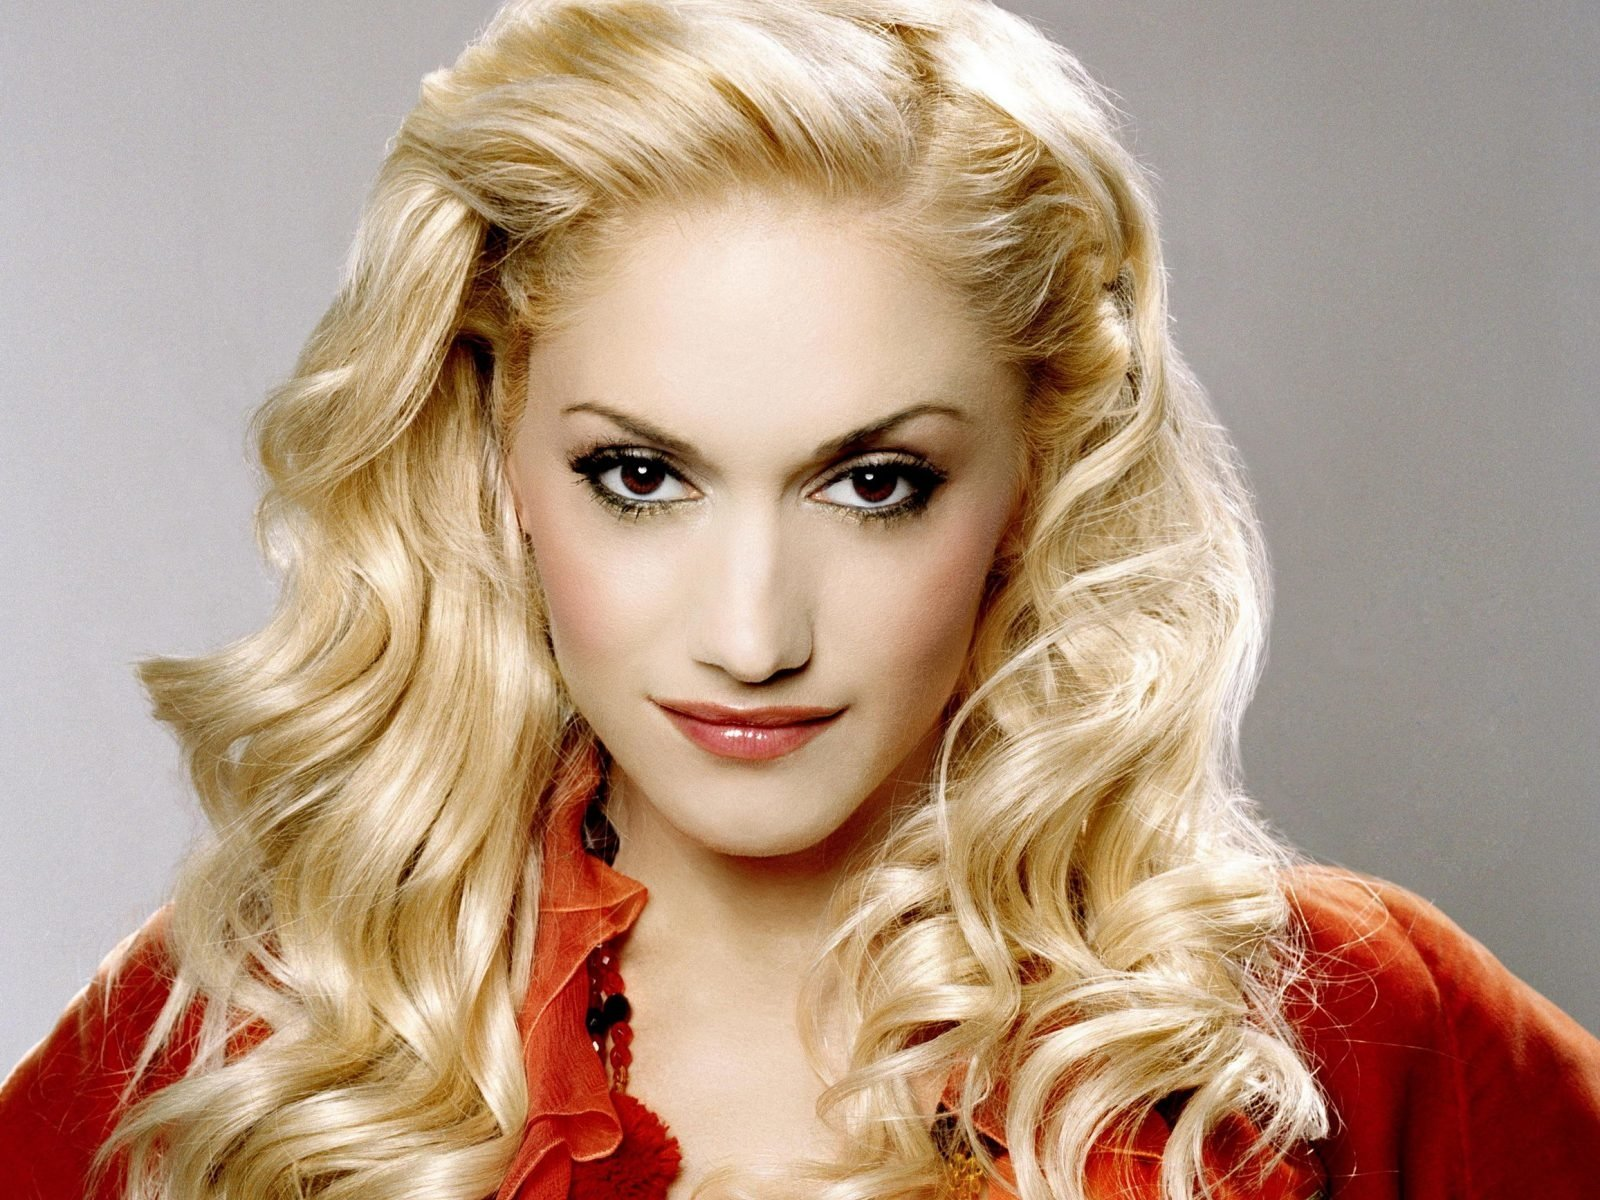 gwen stefani wallpaper cool - photo #15